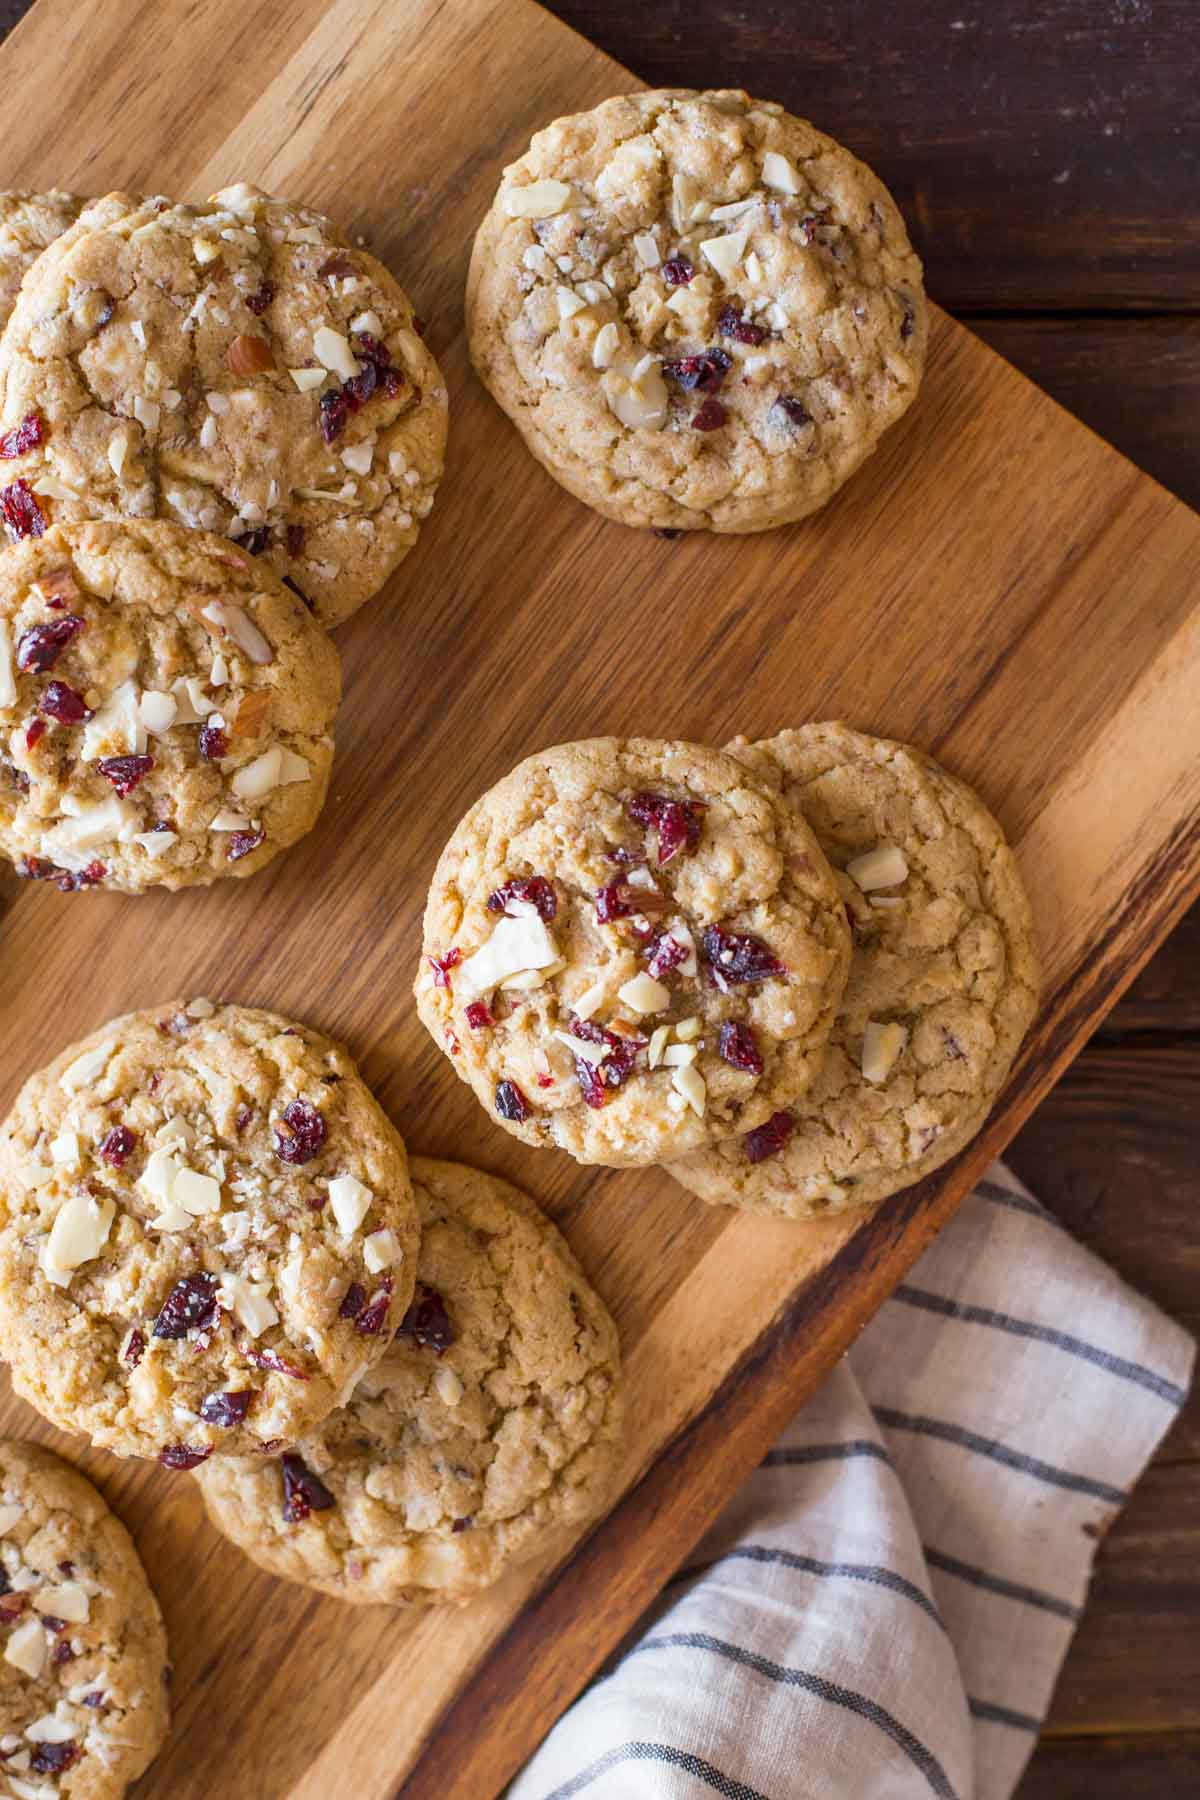 Cranberry Almond White Chocolate Chunk Cookies on a wood cutting board.